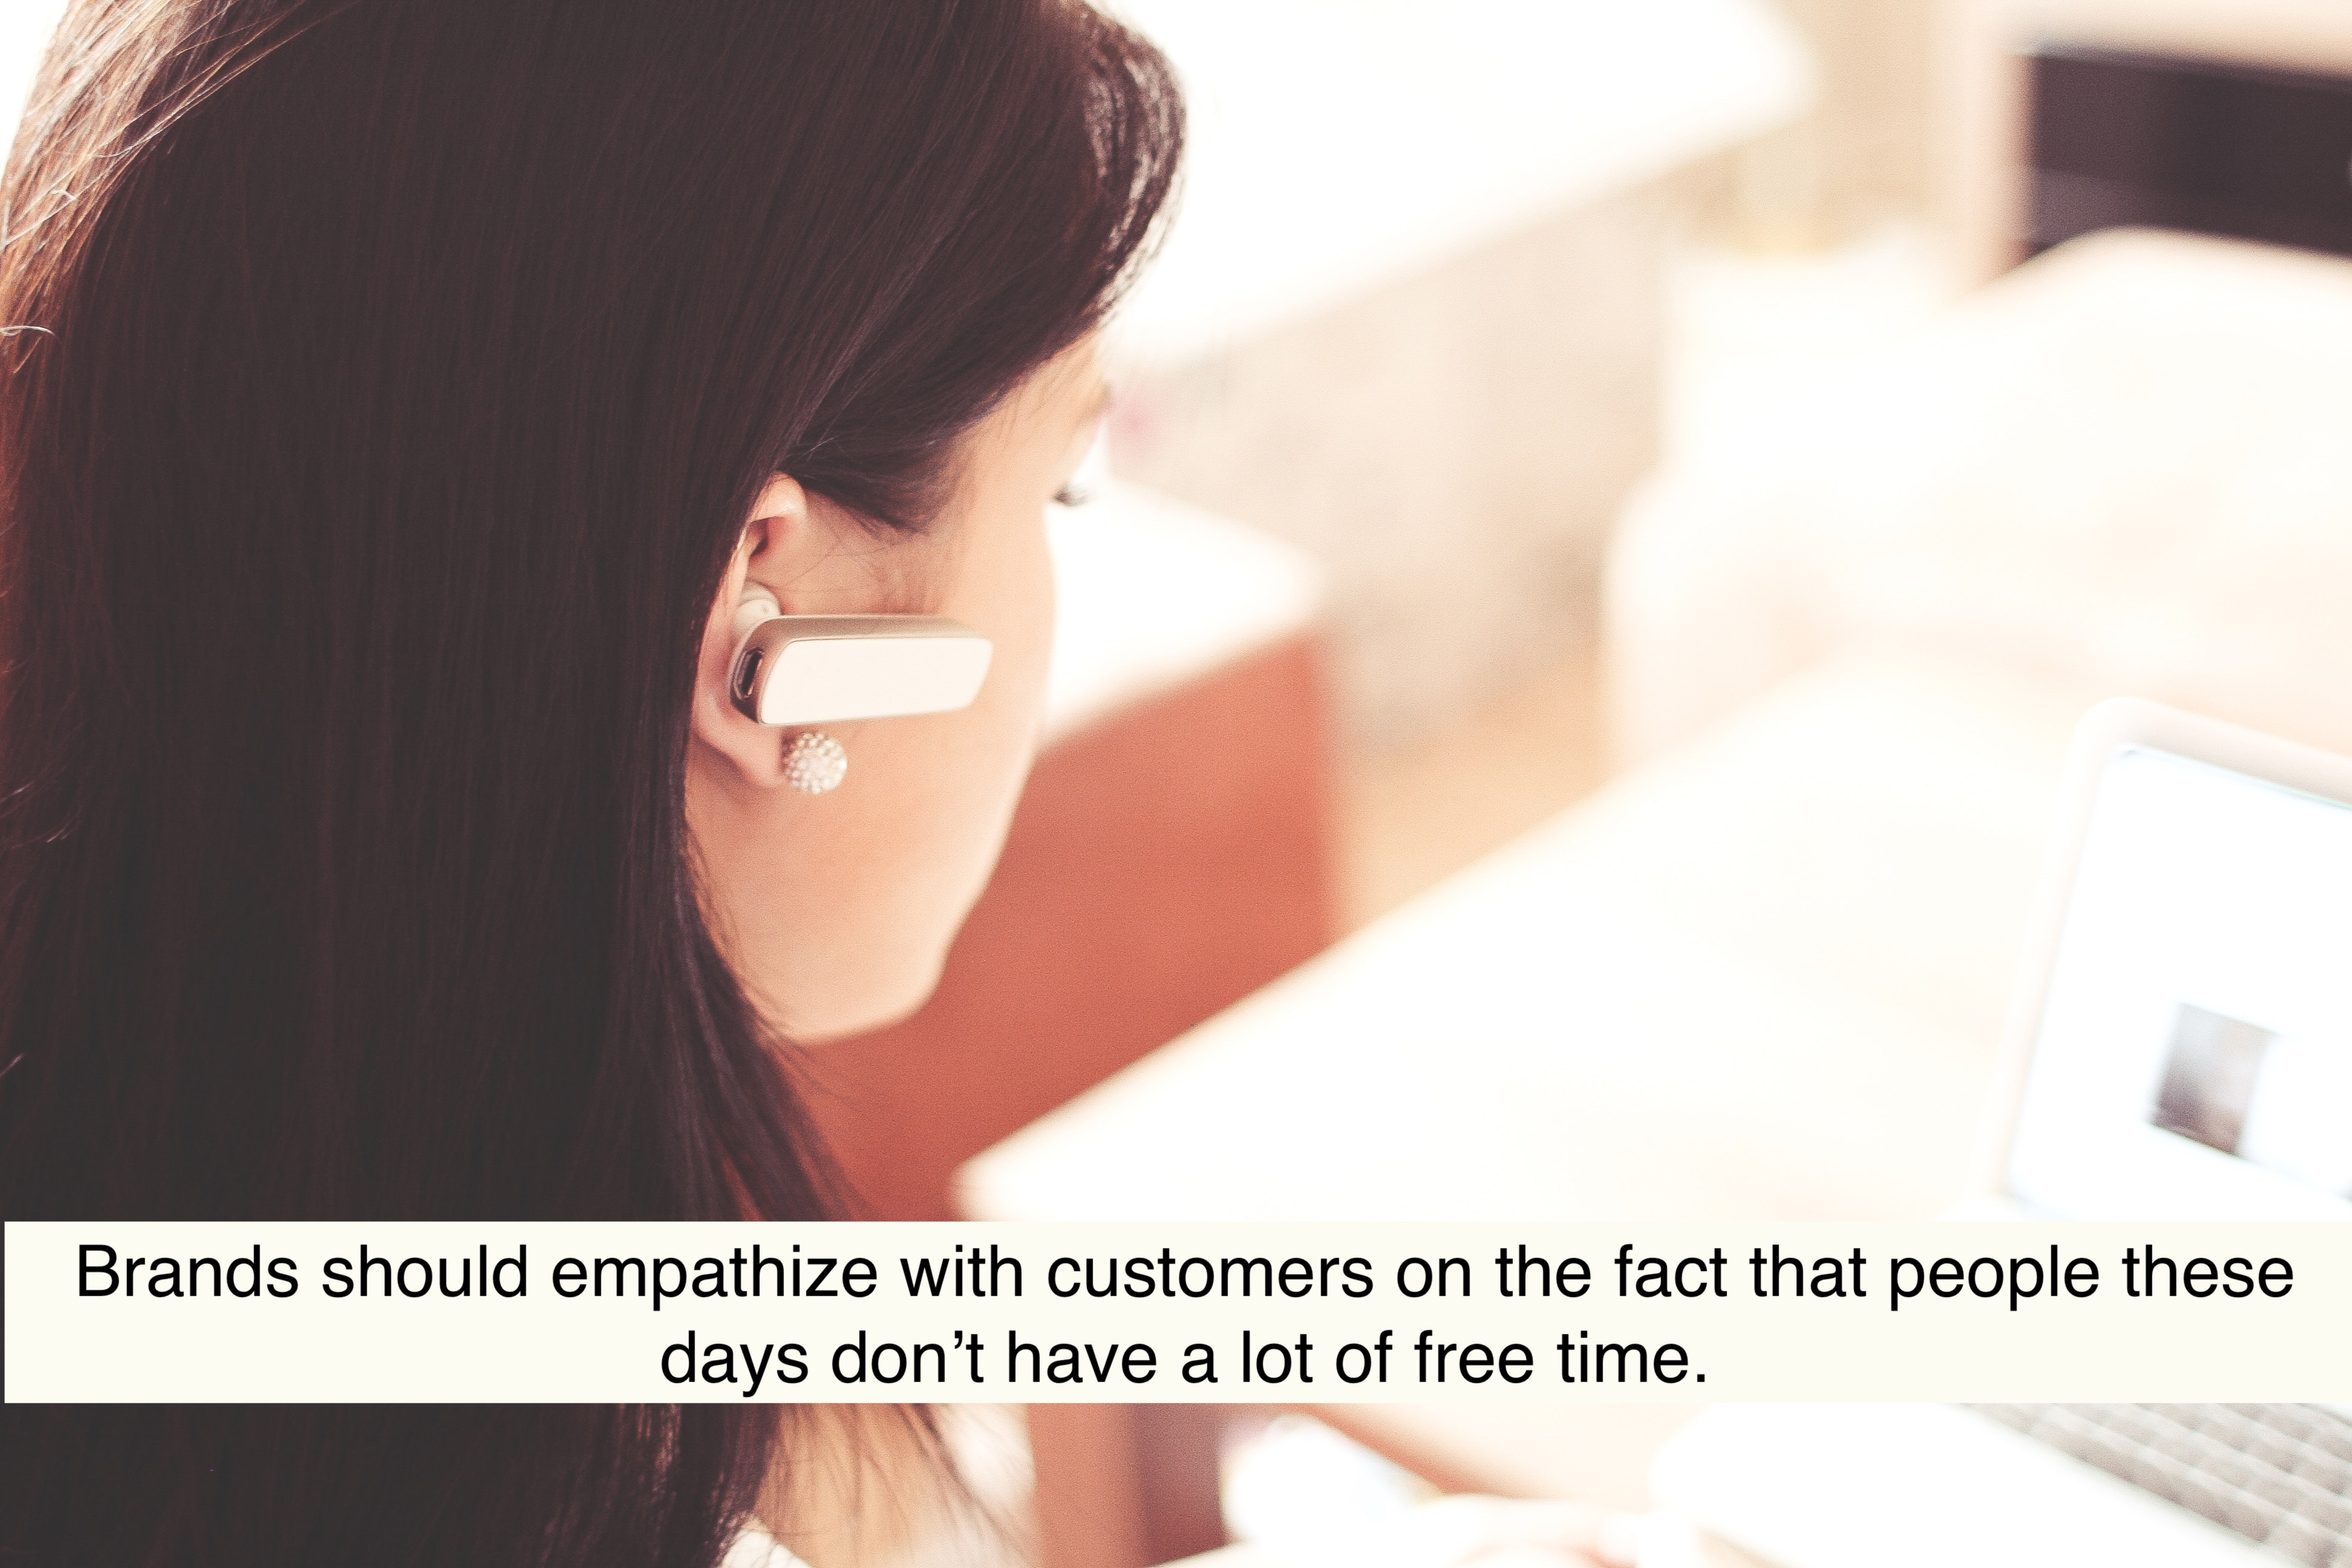 Brands should empathize with customers on the fact that people these days don't have a lot of free time.